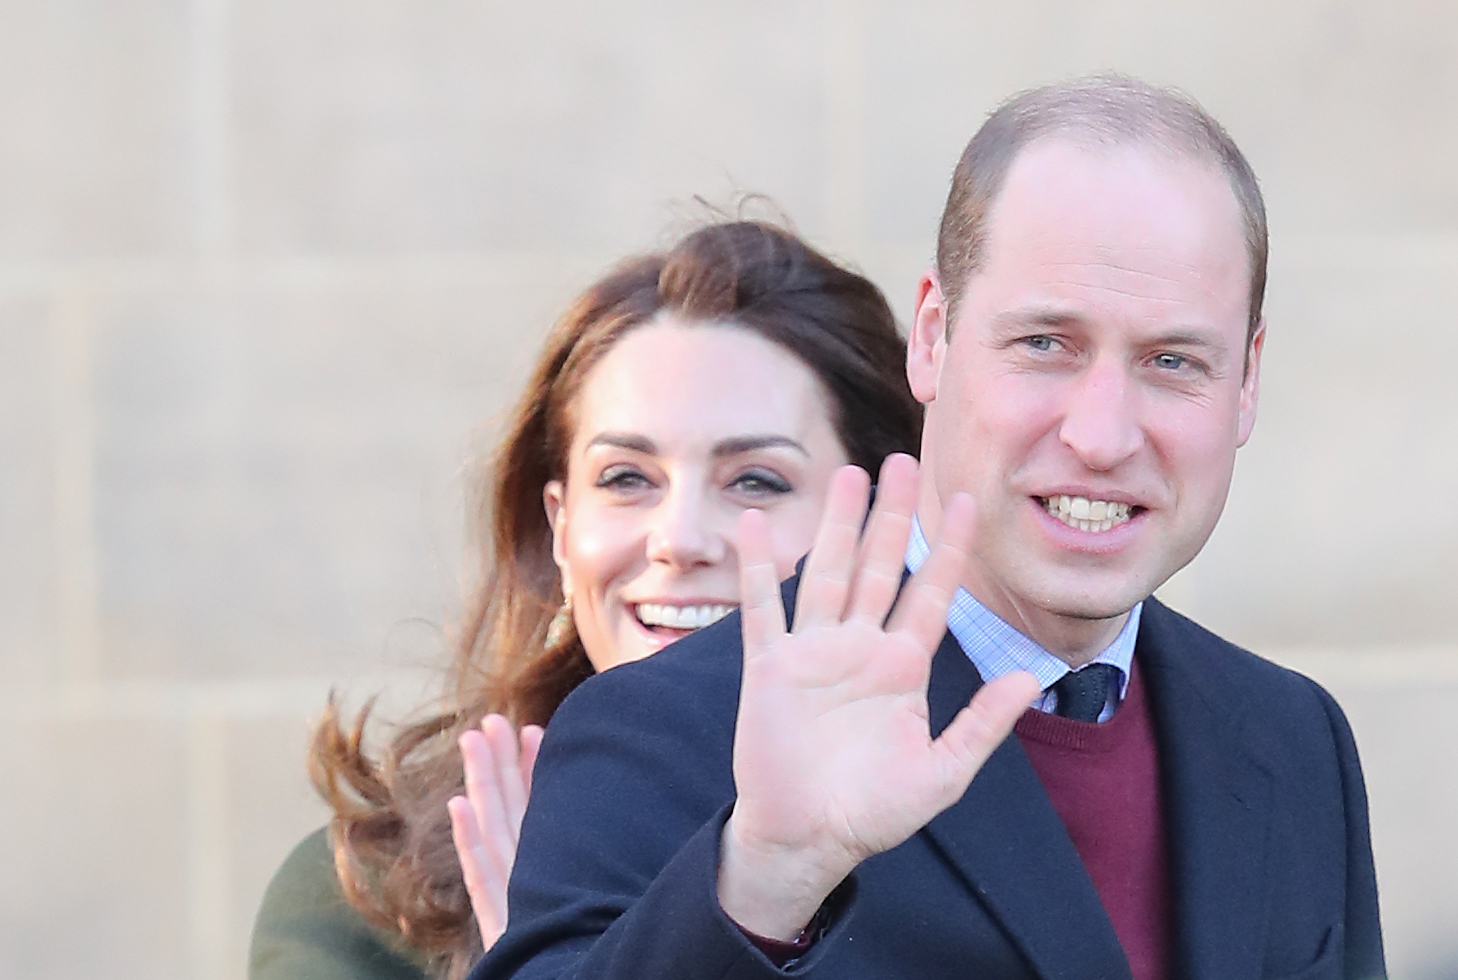 BRADFORD, ENGLAND - JANUARY 15: Catherine, Duchess of Cambridge and Prince William, Duke of Cambridge arrive at City Hall on January 15, 2020 in Bradford, United Kingdom. The Duke and Duchess will meet with representatives from local employers and businesses who are helping young people into employment. (Photo by Chris Jackson/Getty Images) (Photo by Chris Jackson/Getty Images)